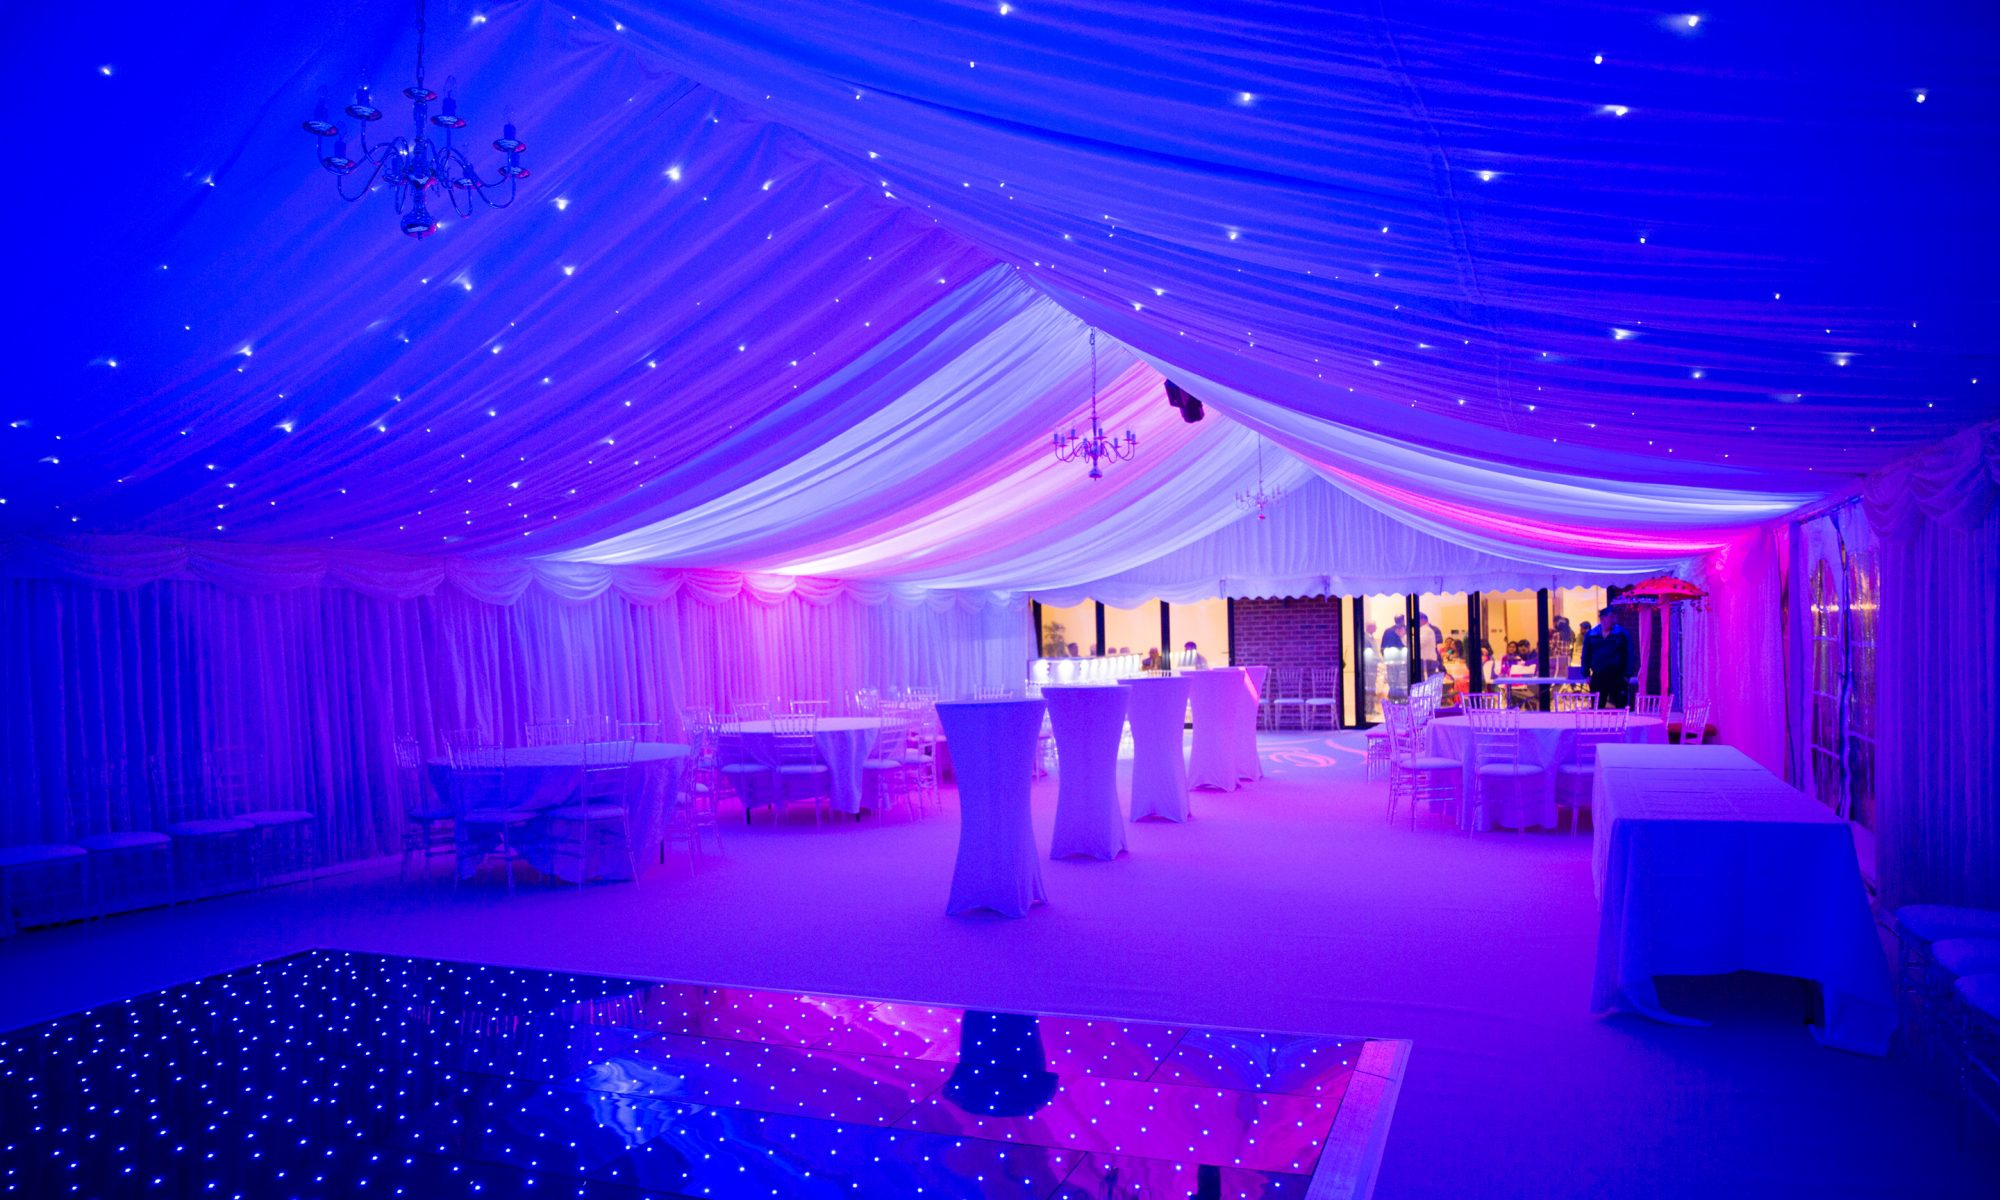 Kenton Events - Marquee Hire Services in Kenton